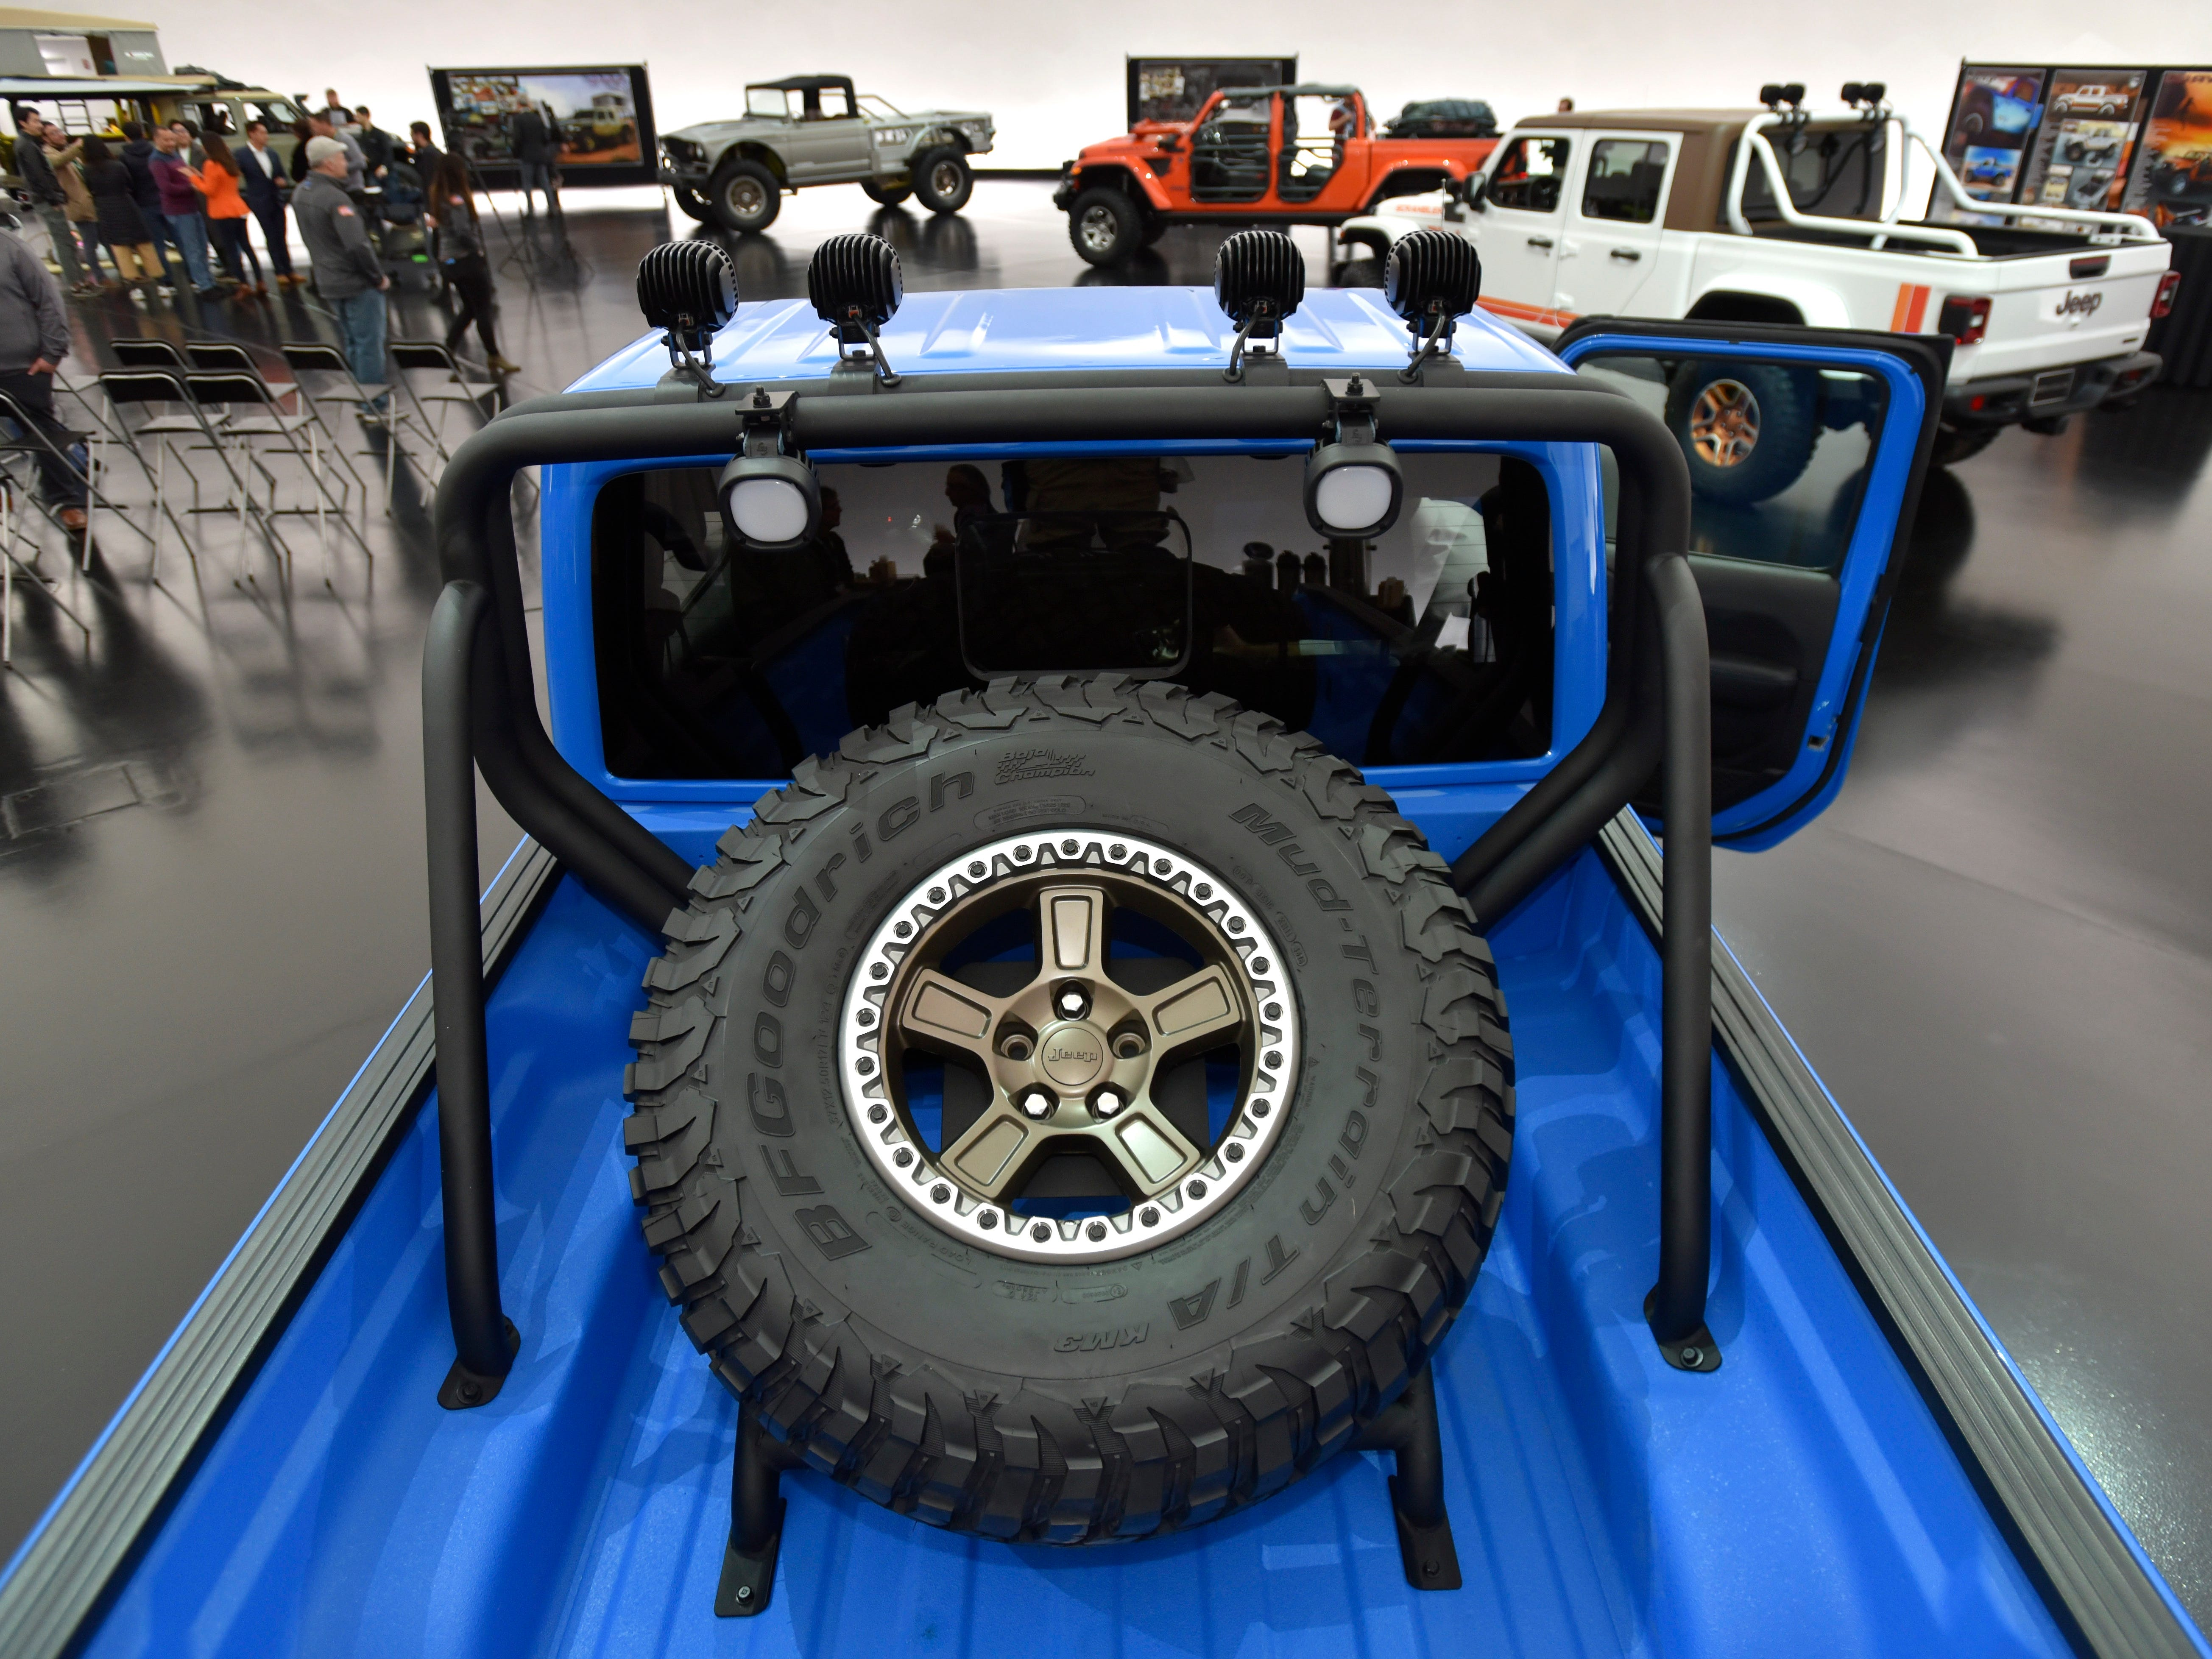 This is a roll bar and spare tire in the bed of the Jeep J6 concept in Metallic Brilliant Blue.